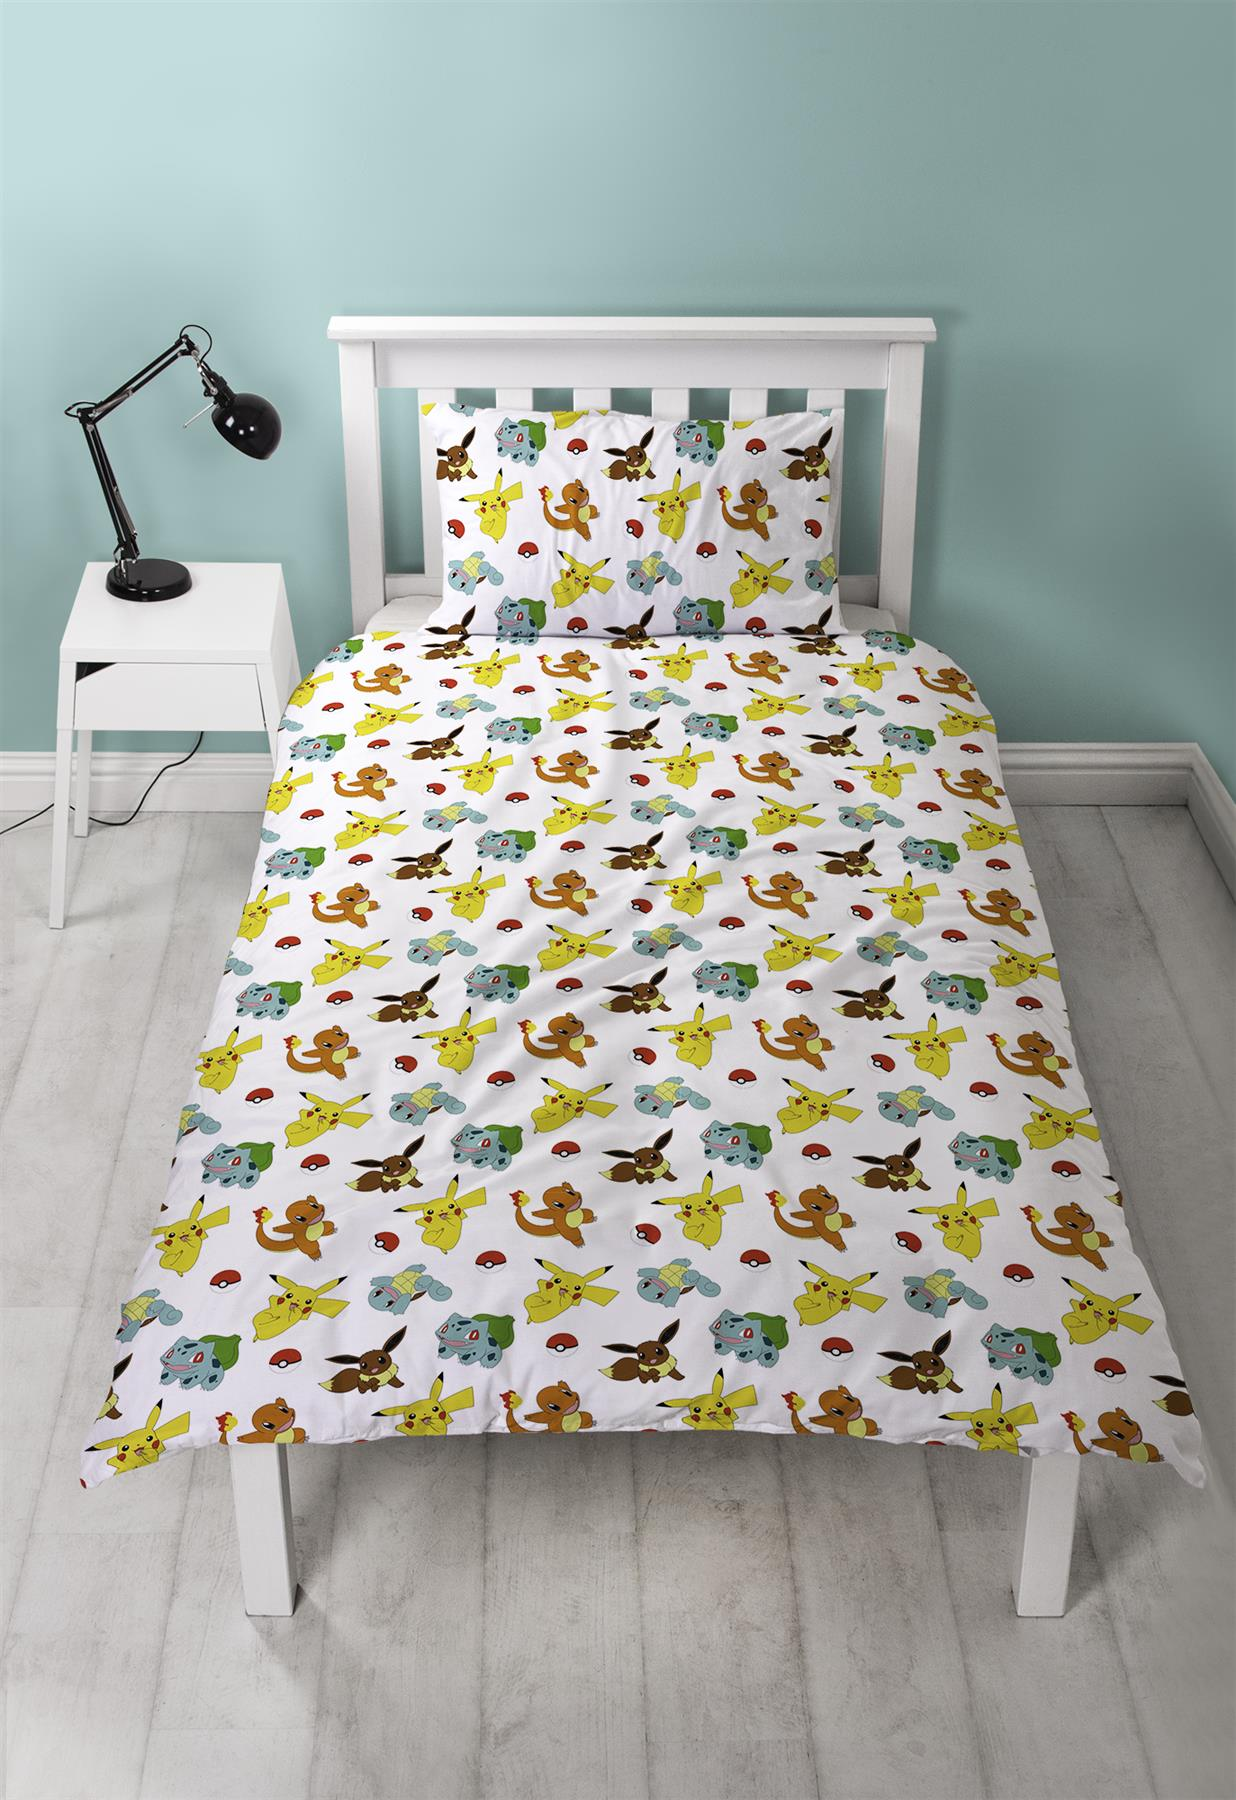 Official-Pokemon-Licensed-Duvet-Covers-Single-Double-Pikachu-Bedding-Gaming thumbnail 41